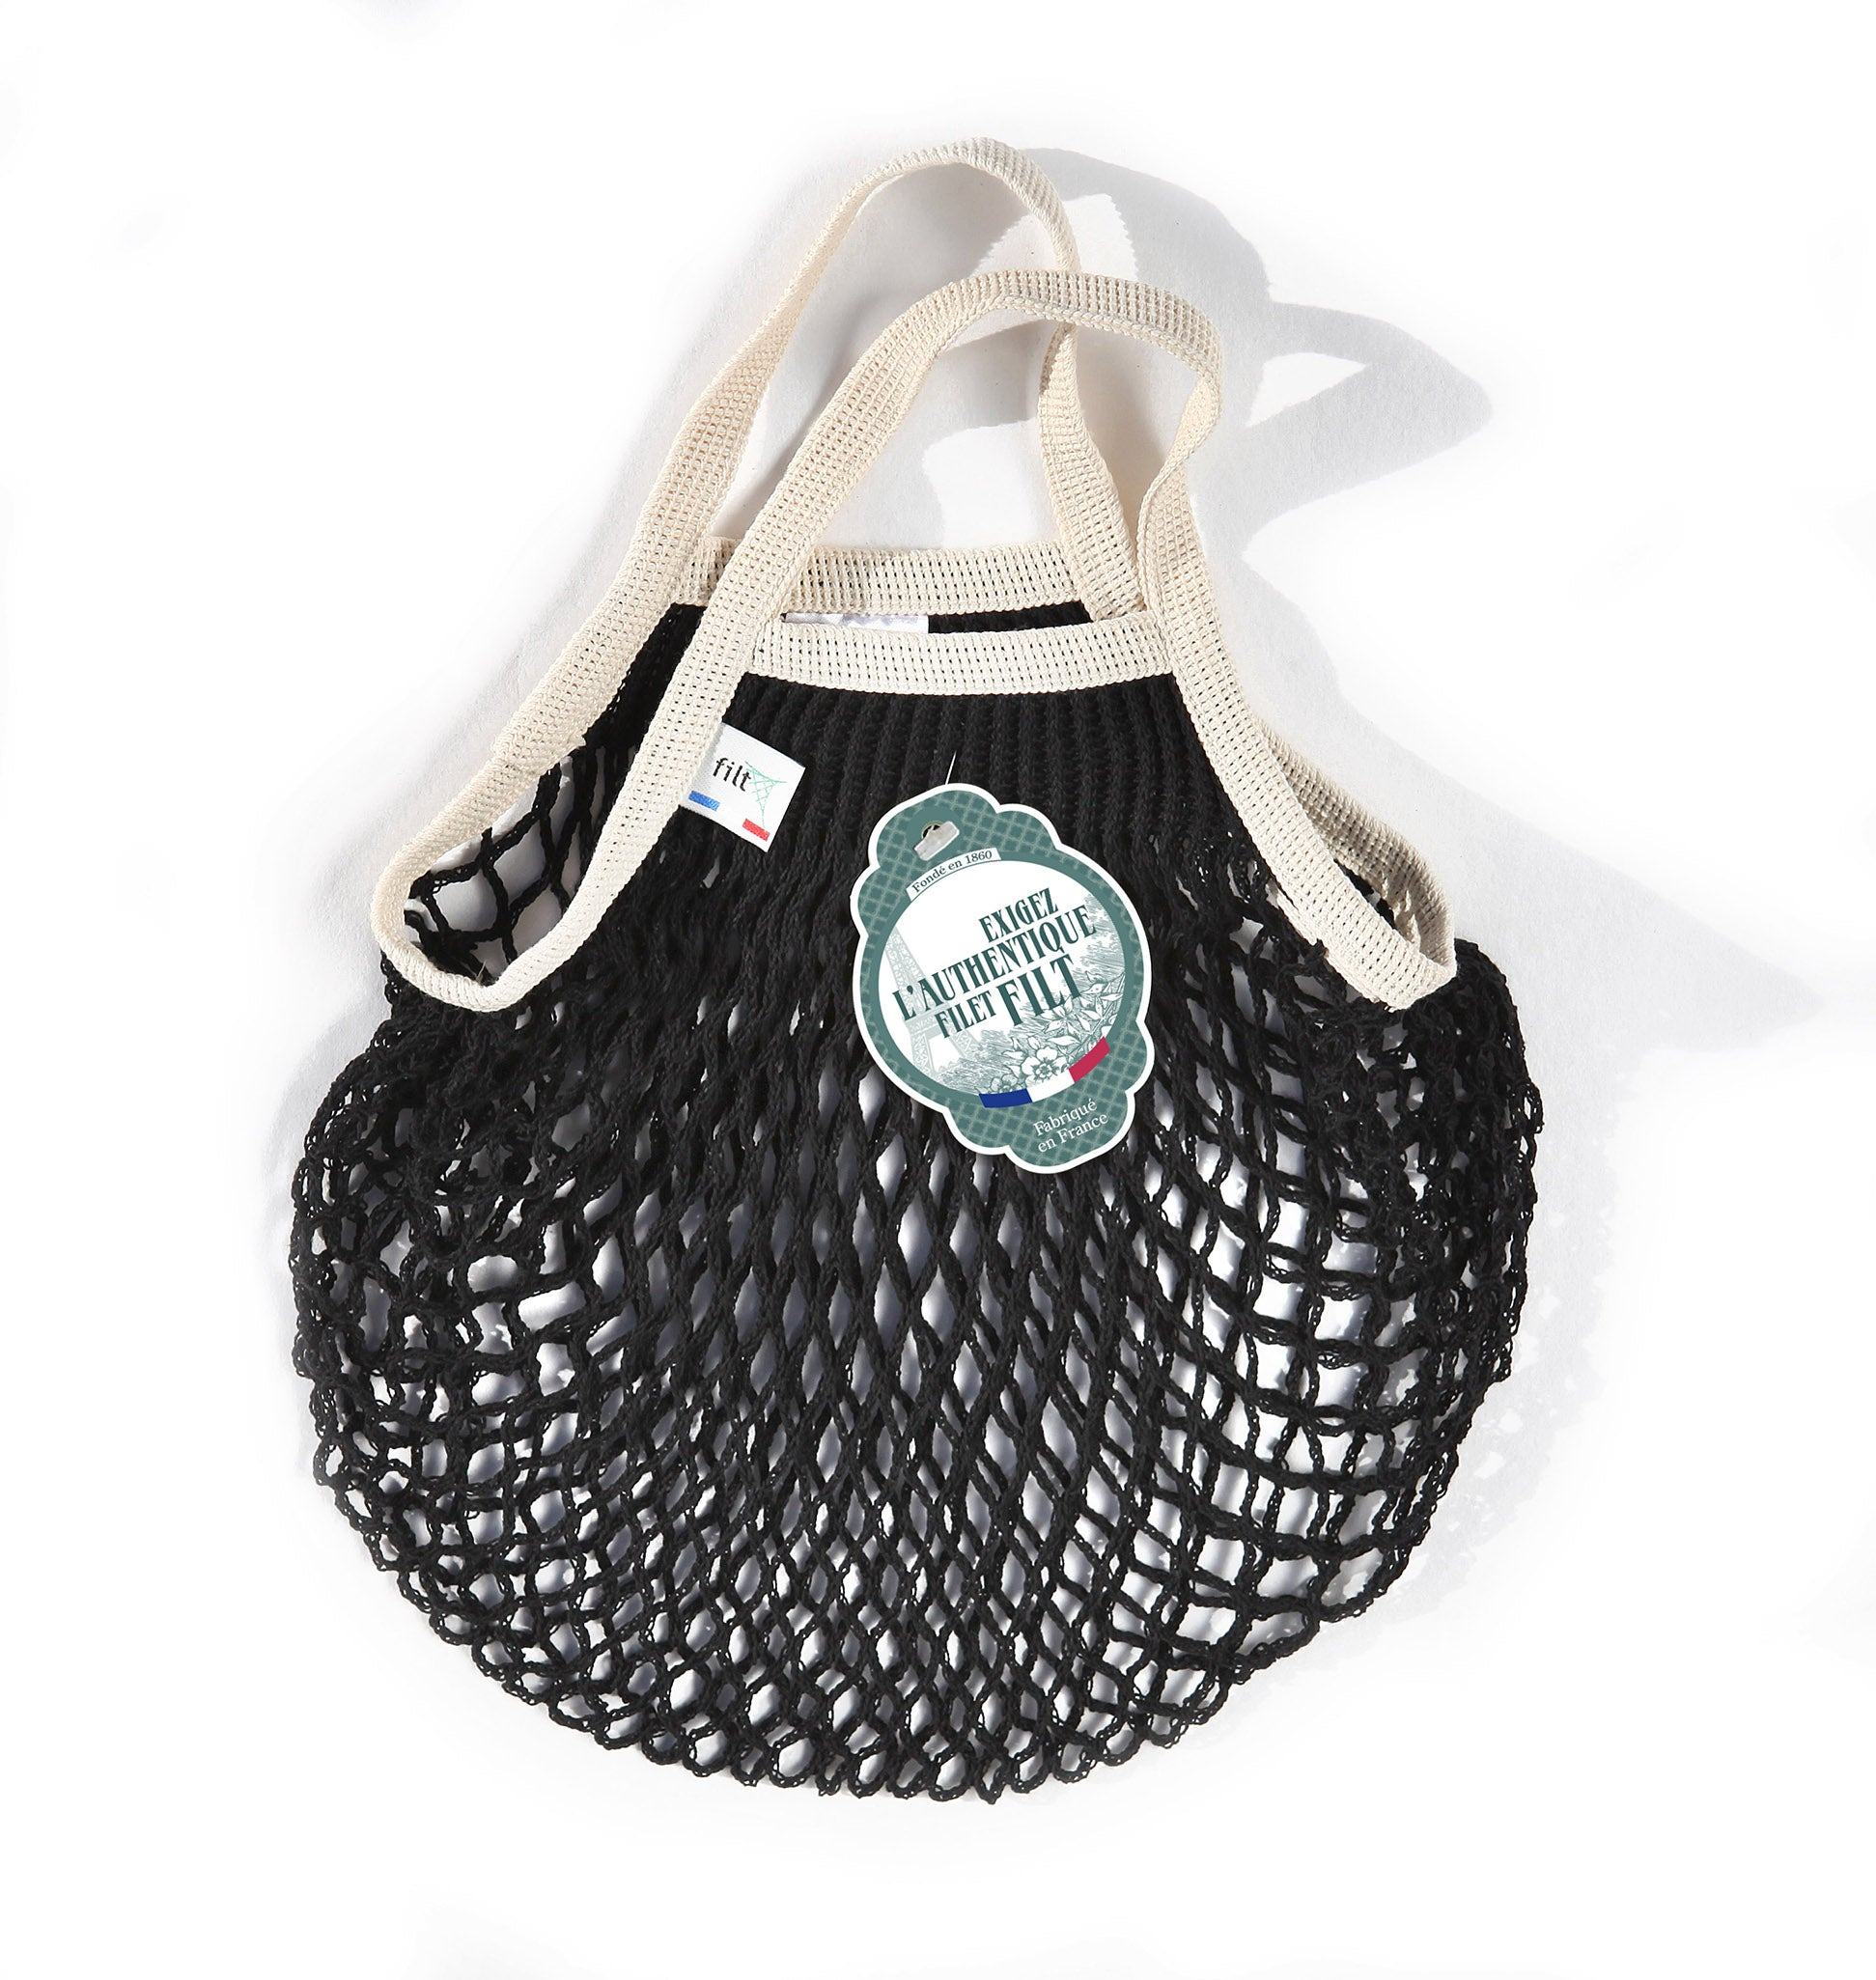 Filt Mini Bag in Black with Ivory Handles